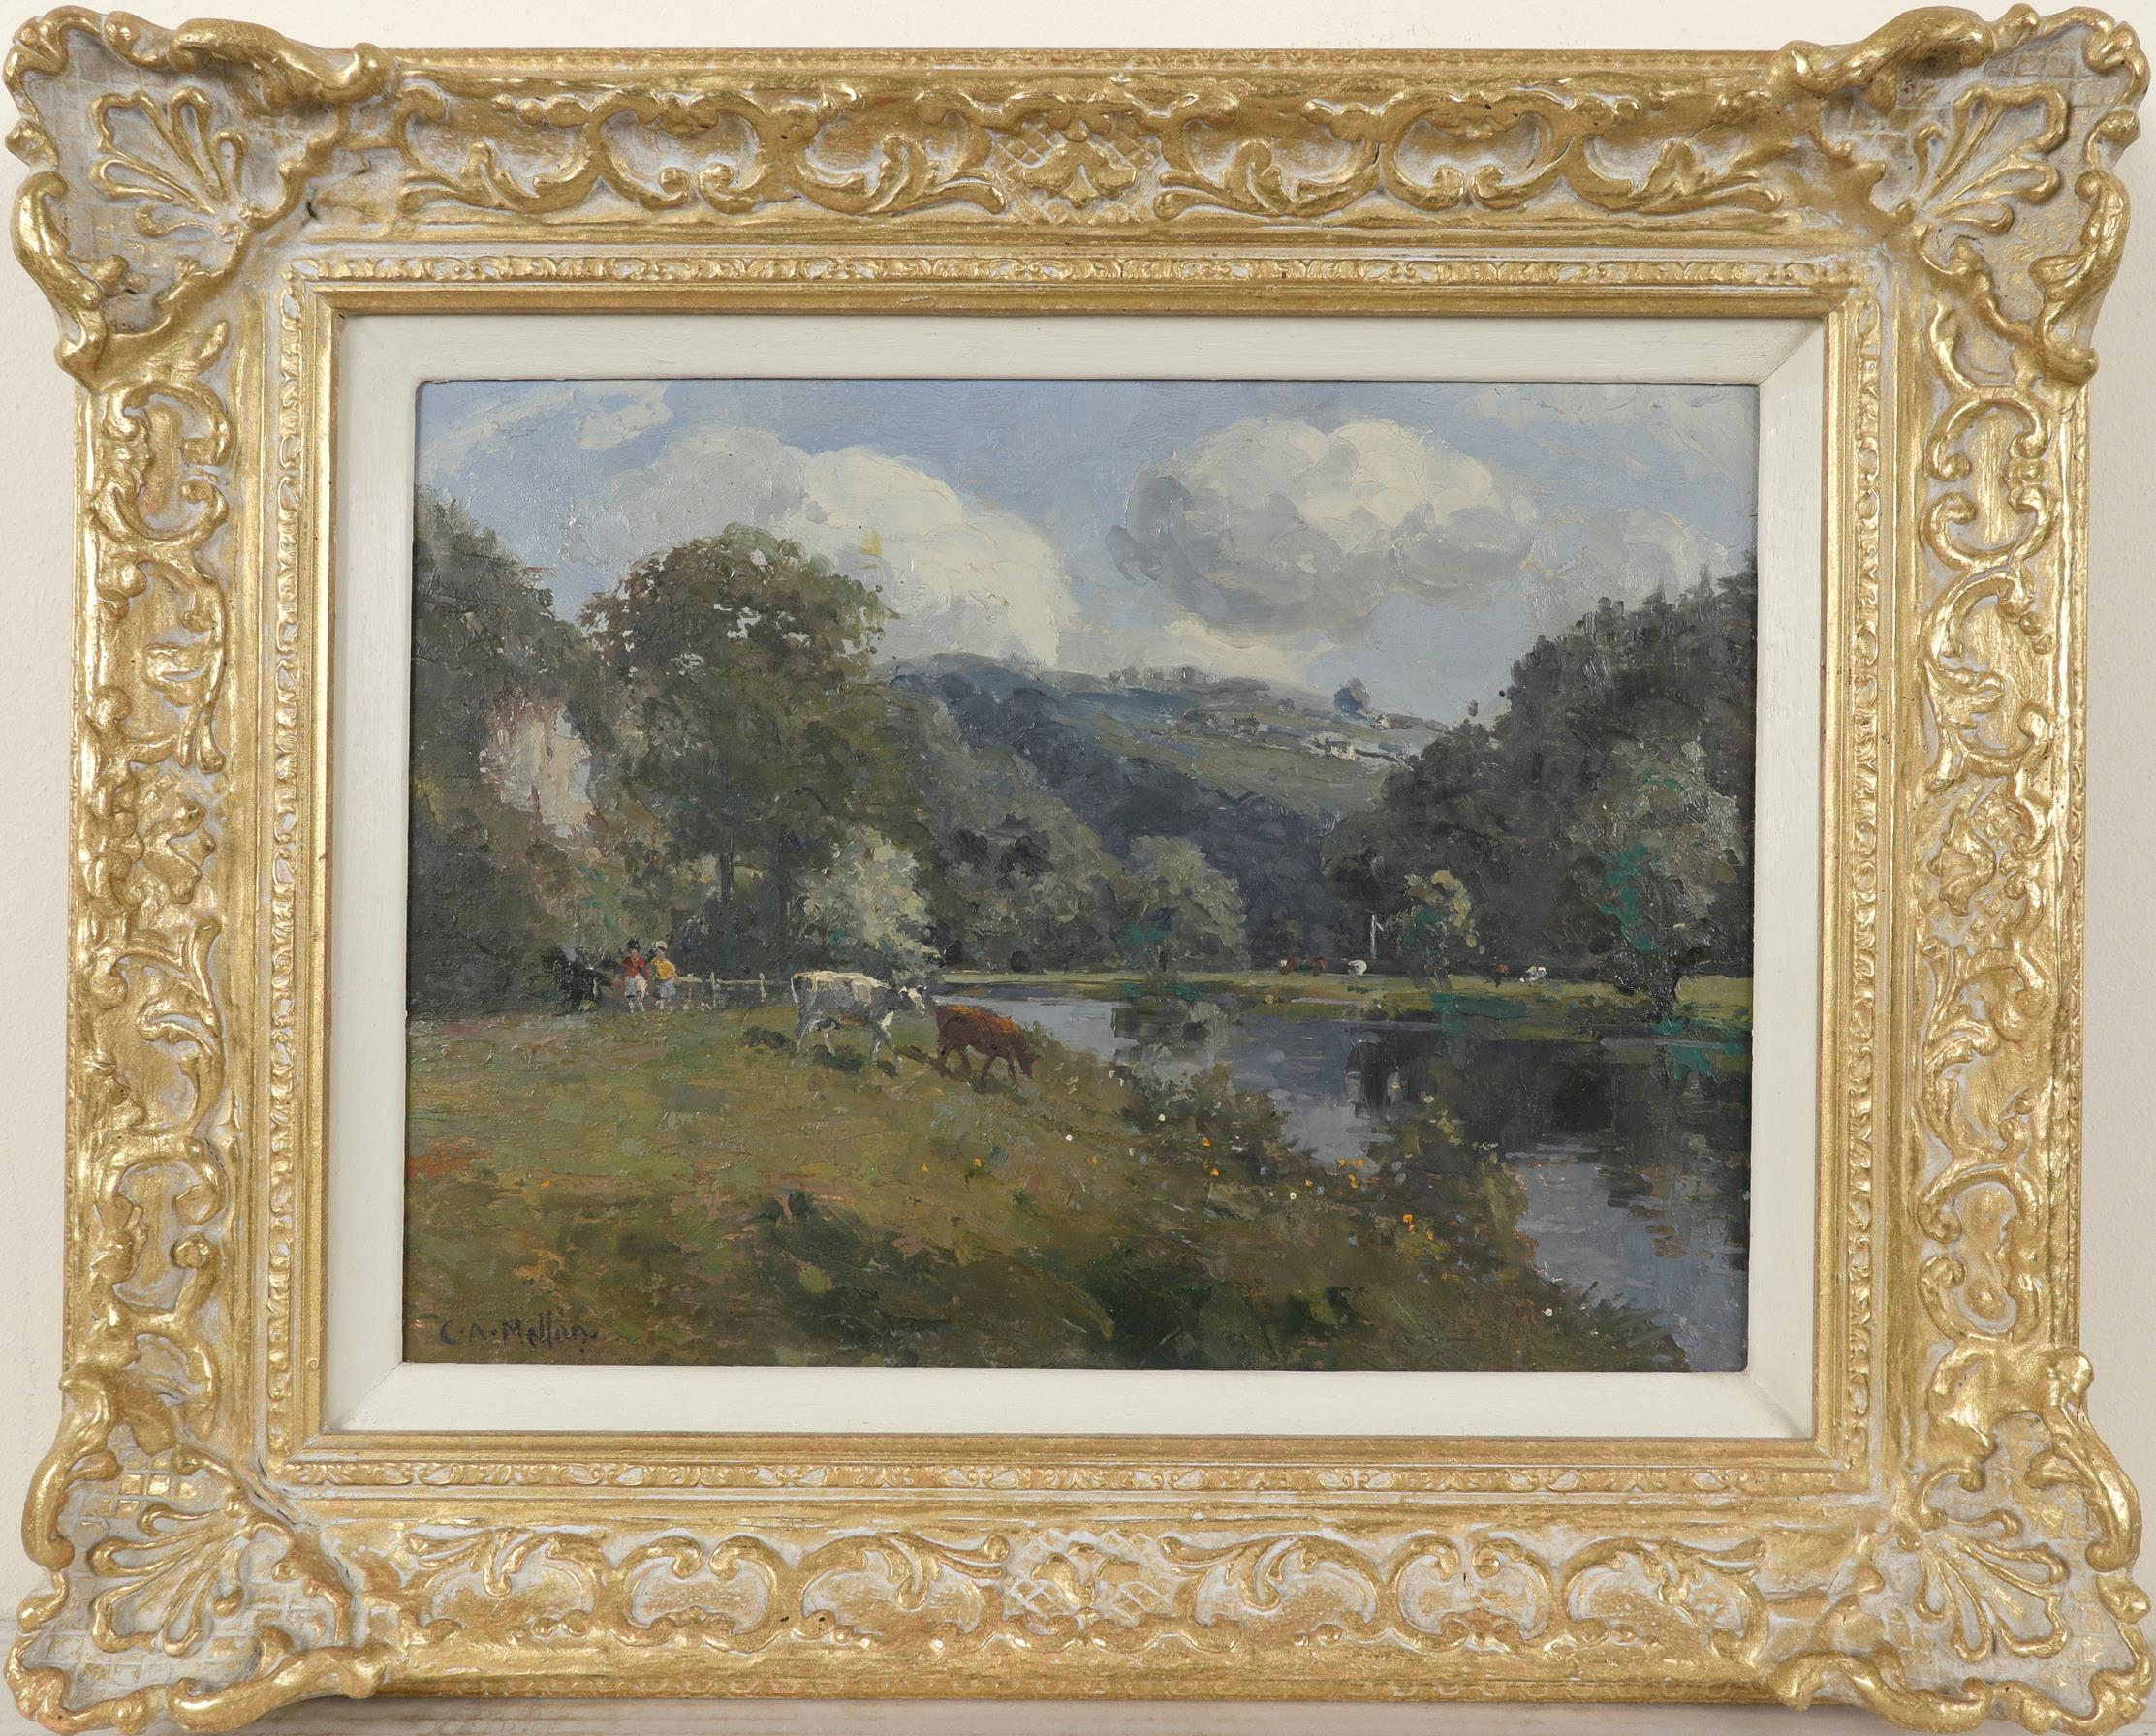 ‡Campbell Archibald Mellon (1876-1955) The River Wye Signed C.A.Mellon. (lower left) Oil on board - Image 2 of 3